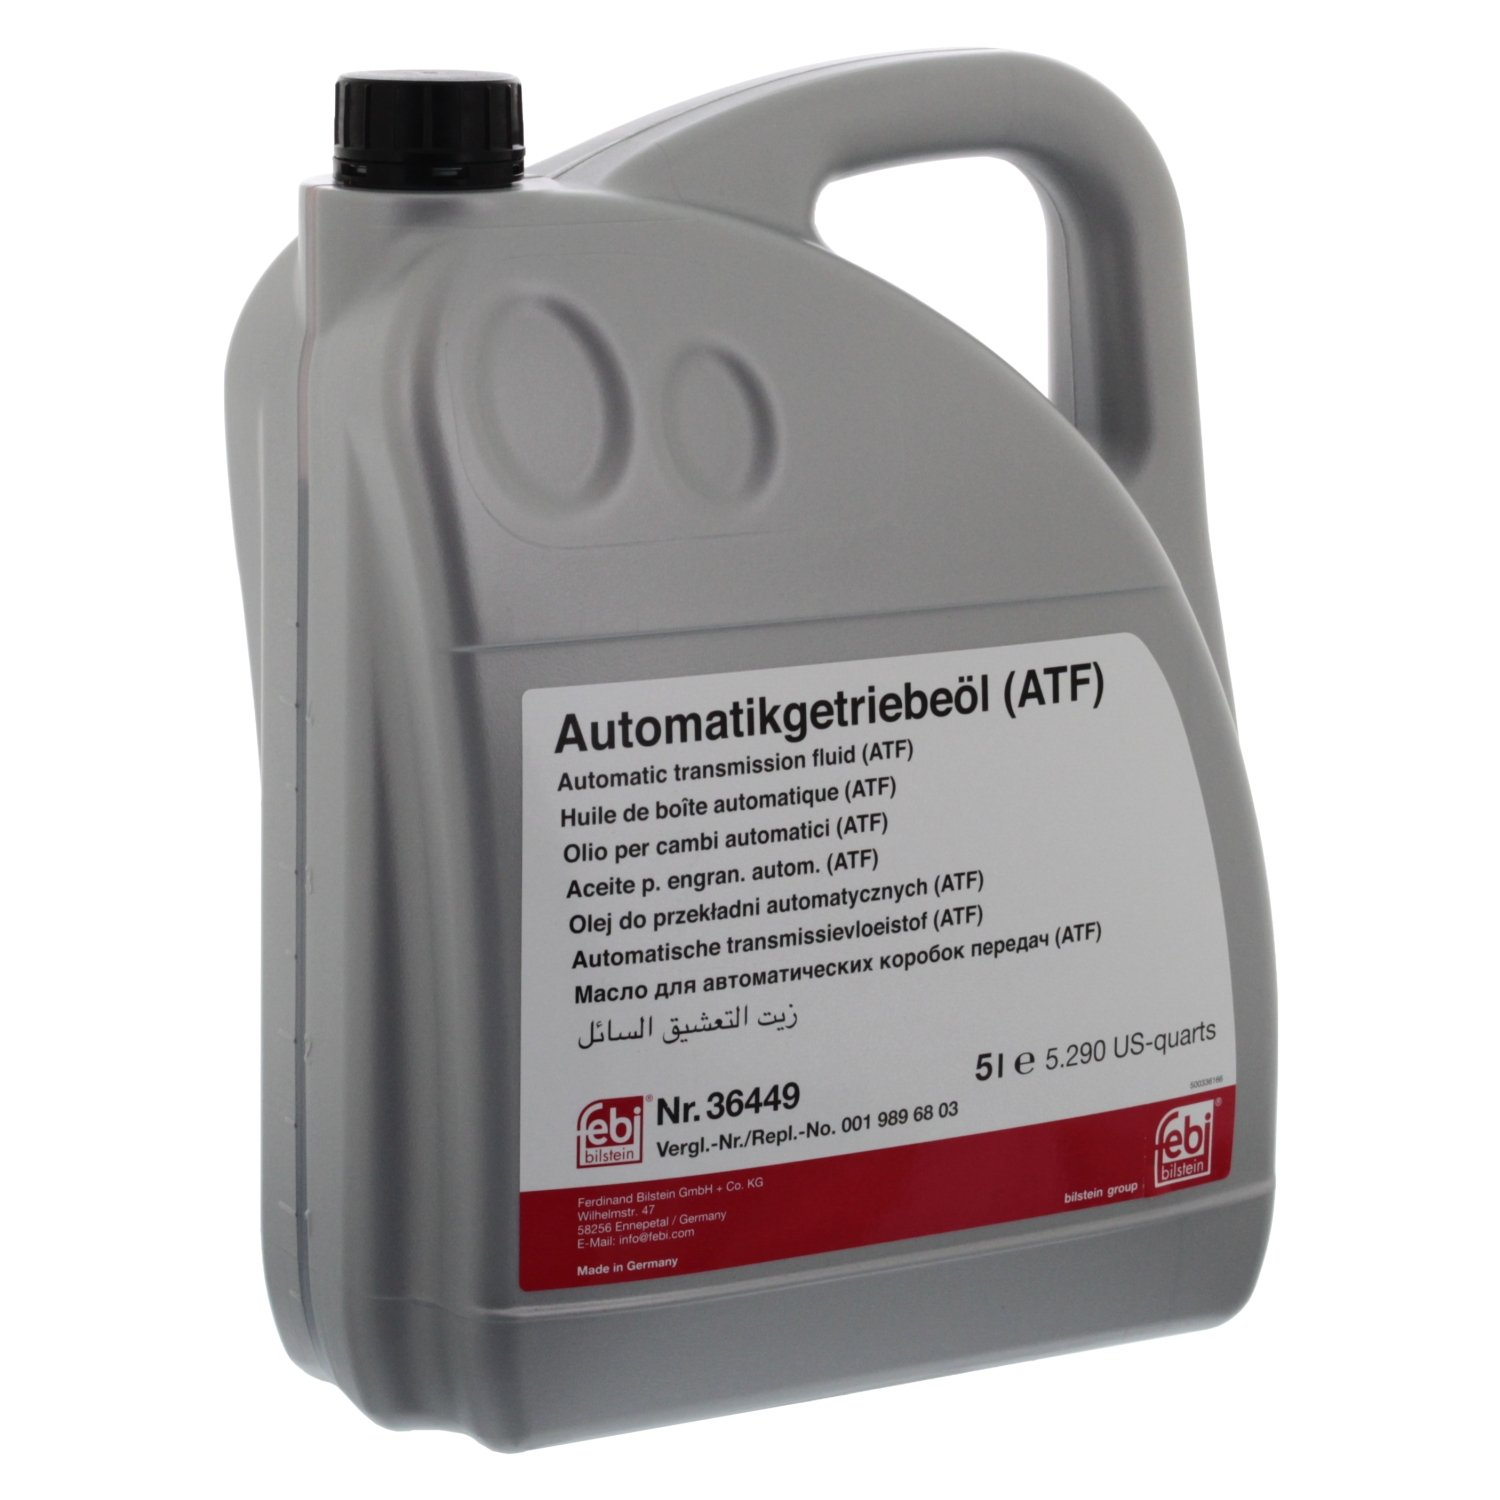 febi bilstein 36449 automatic transmission fluid (ATF) - Pack of 1